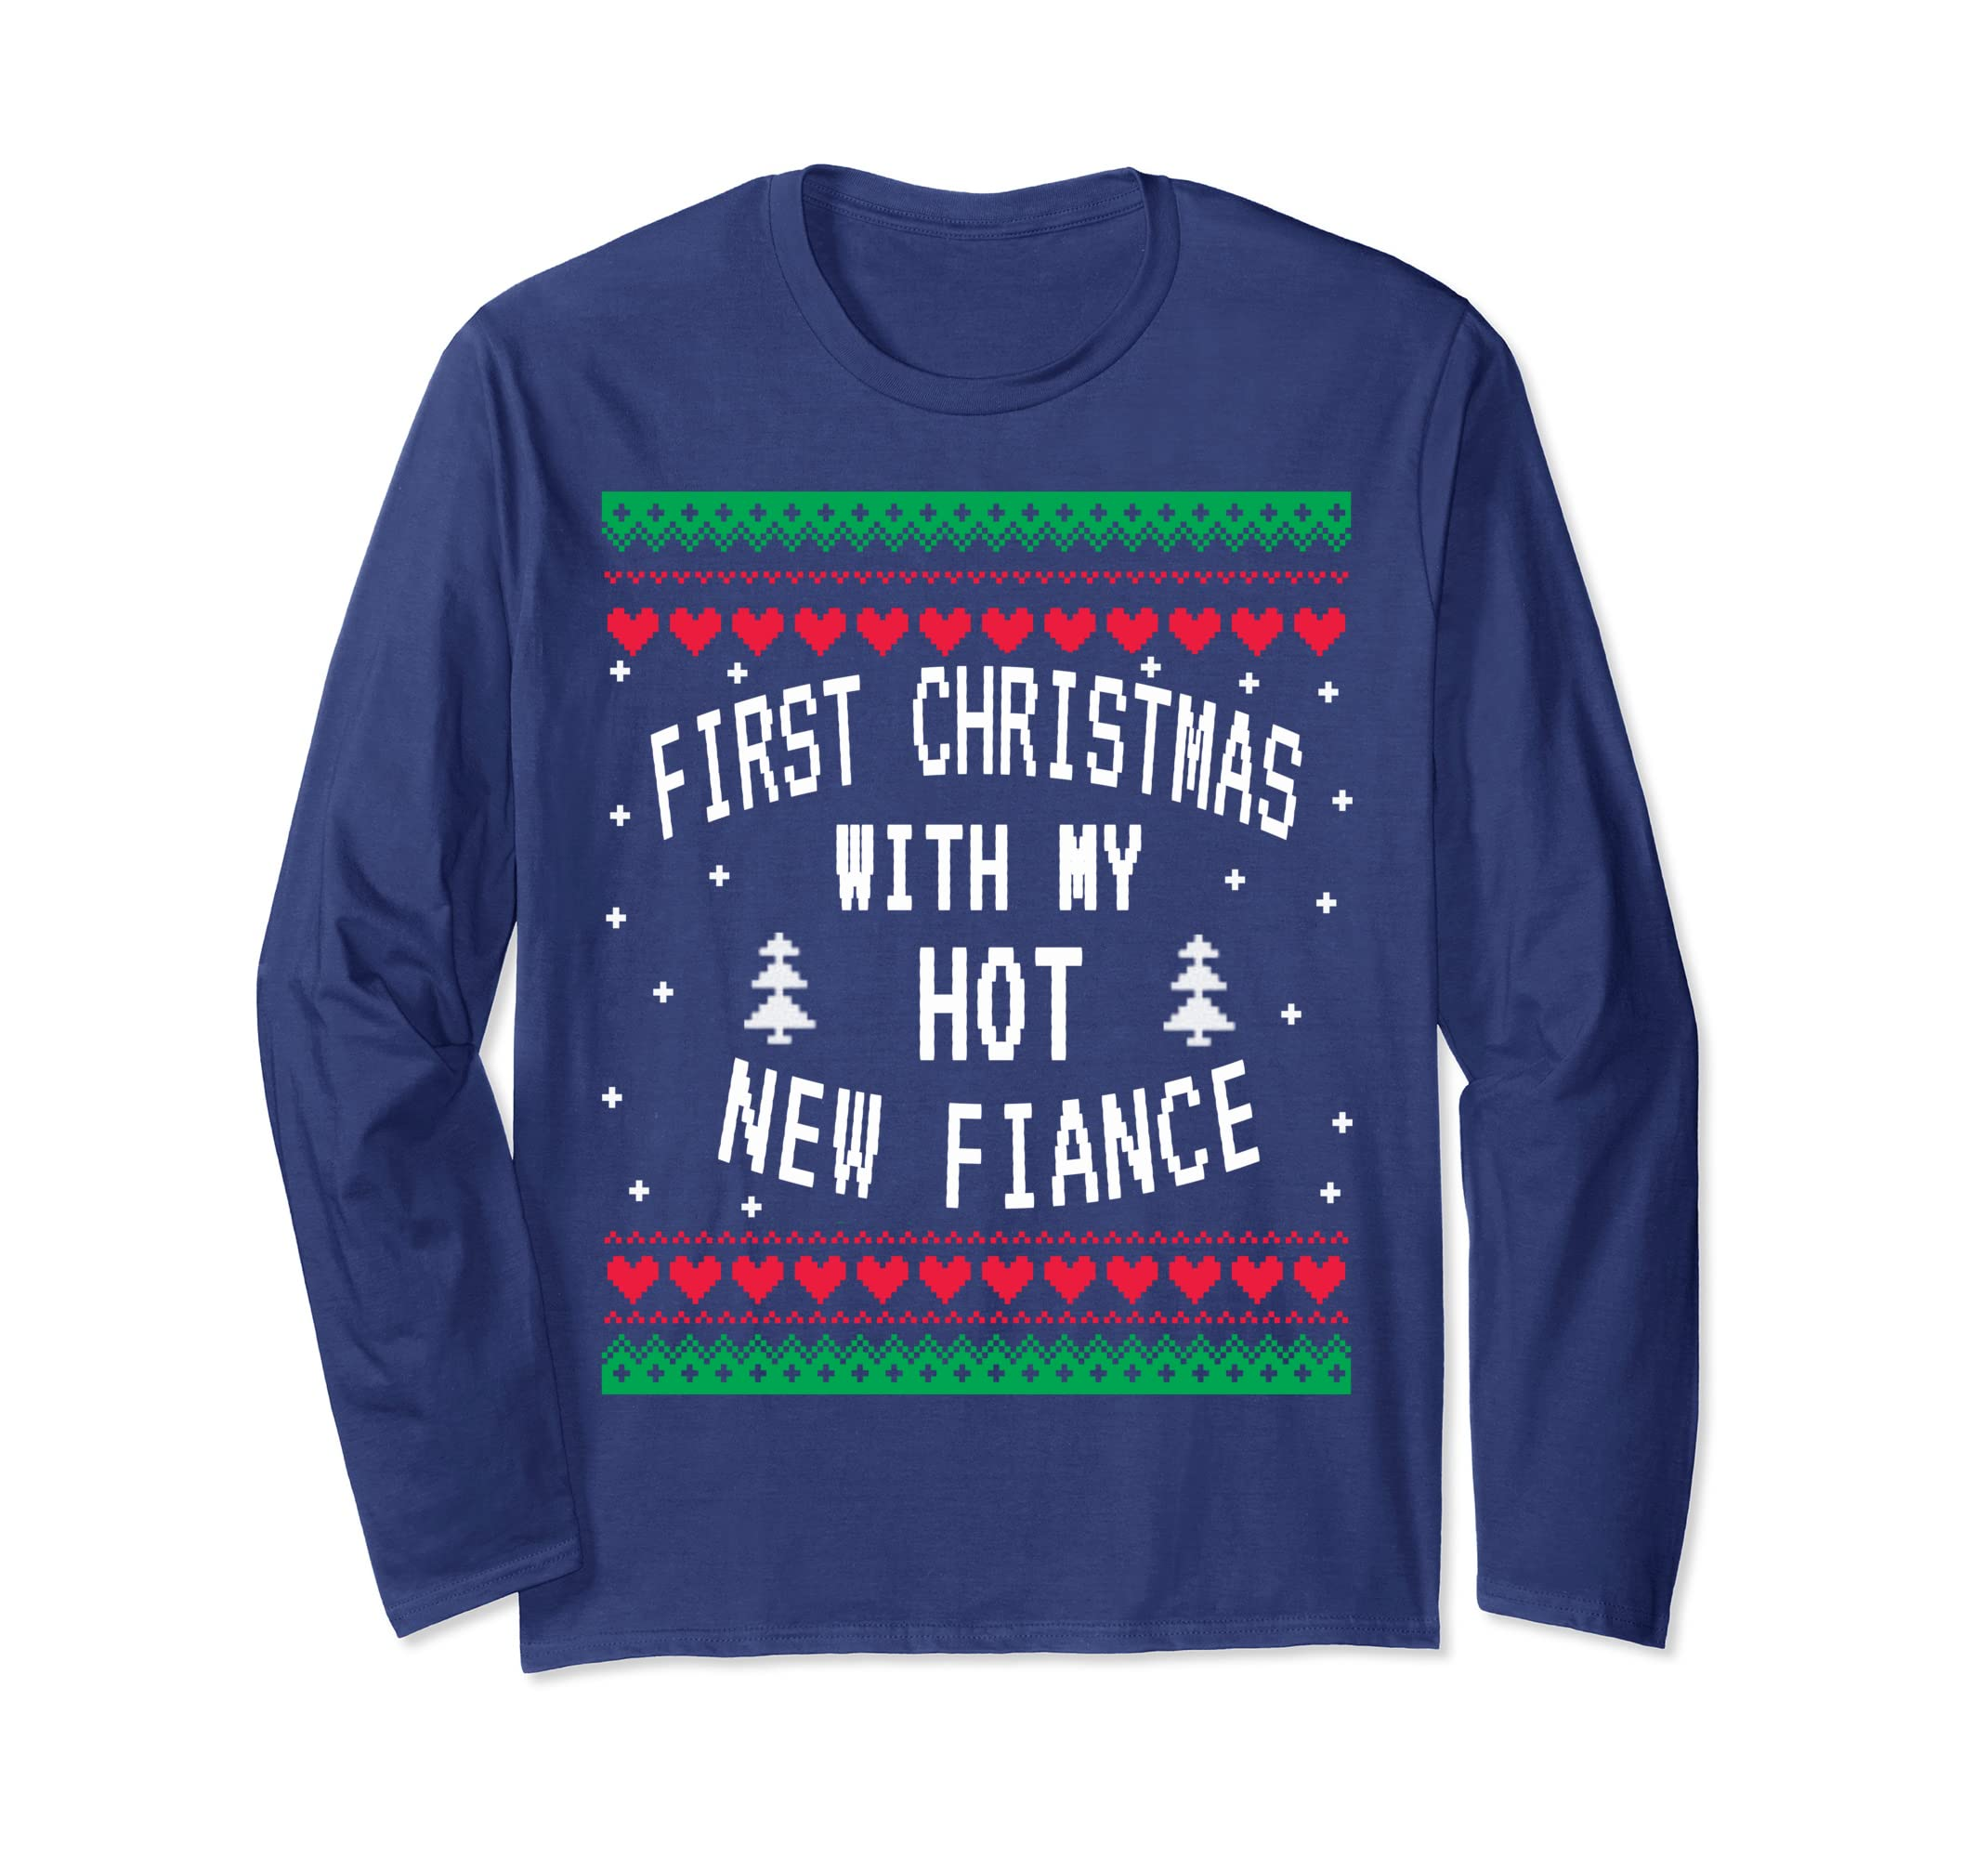 eaddcb82629d Amazon.com: First Christmas With My Hot New Fiance Shirt Ugly Sweater:  Clothing